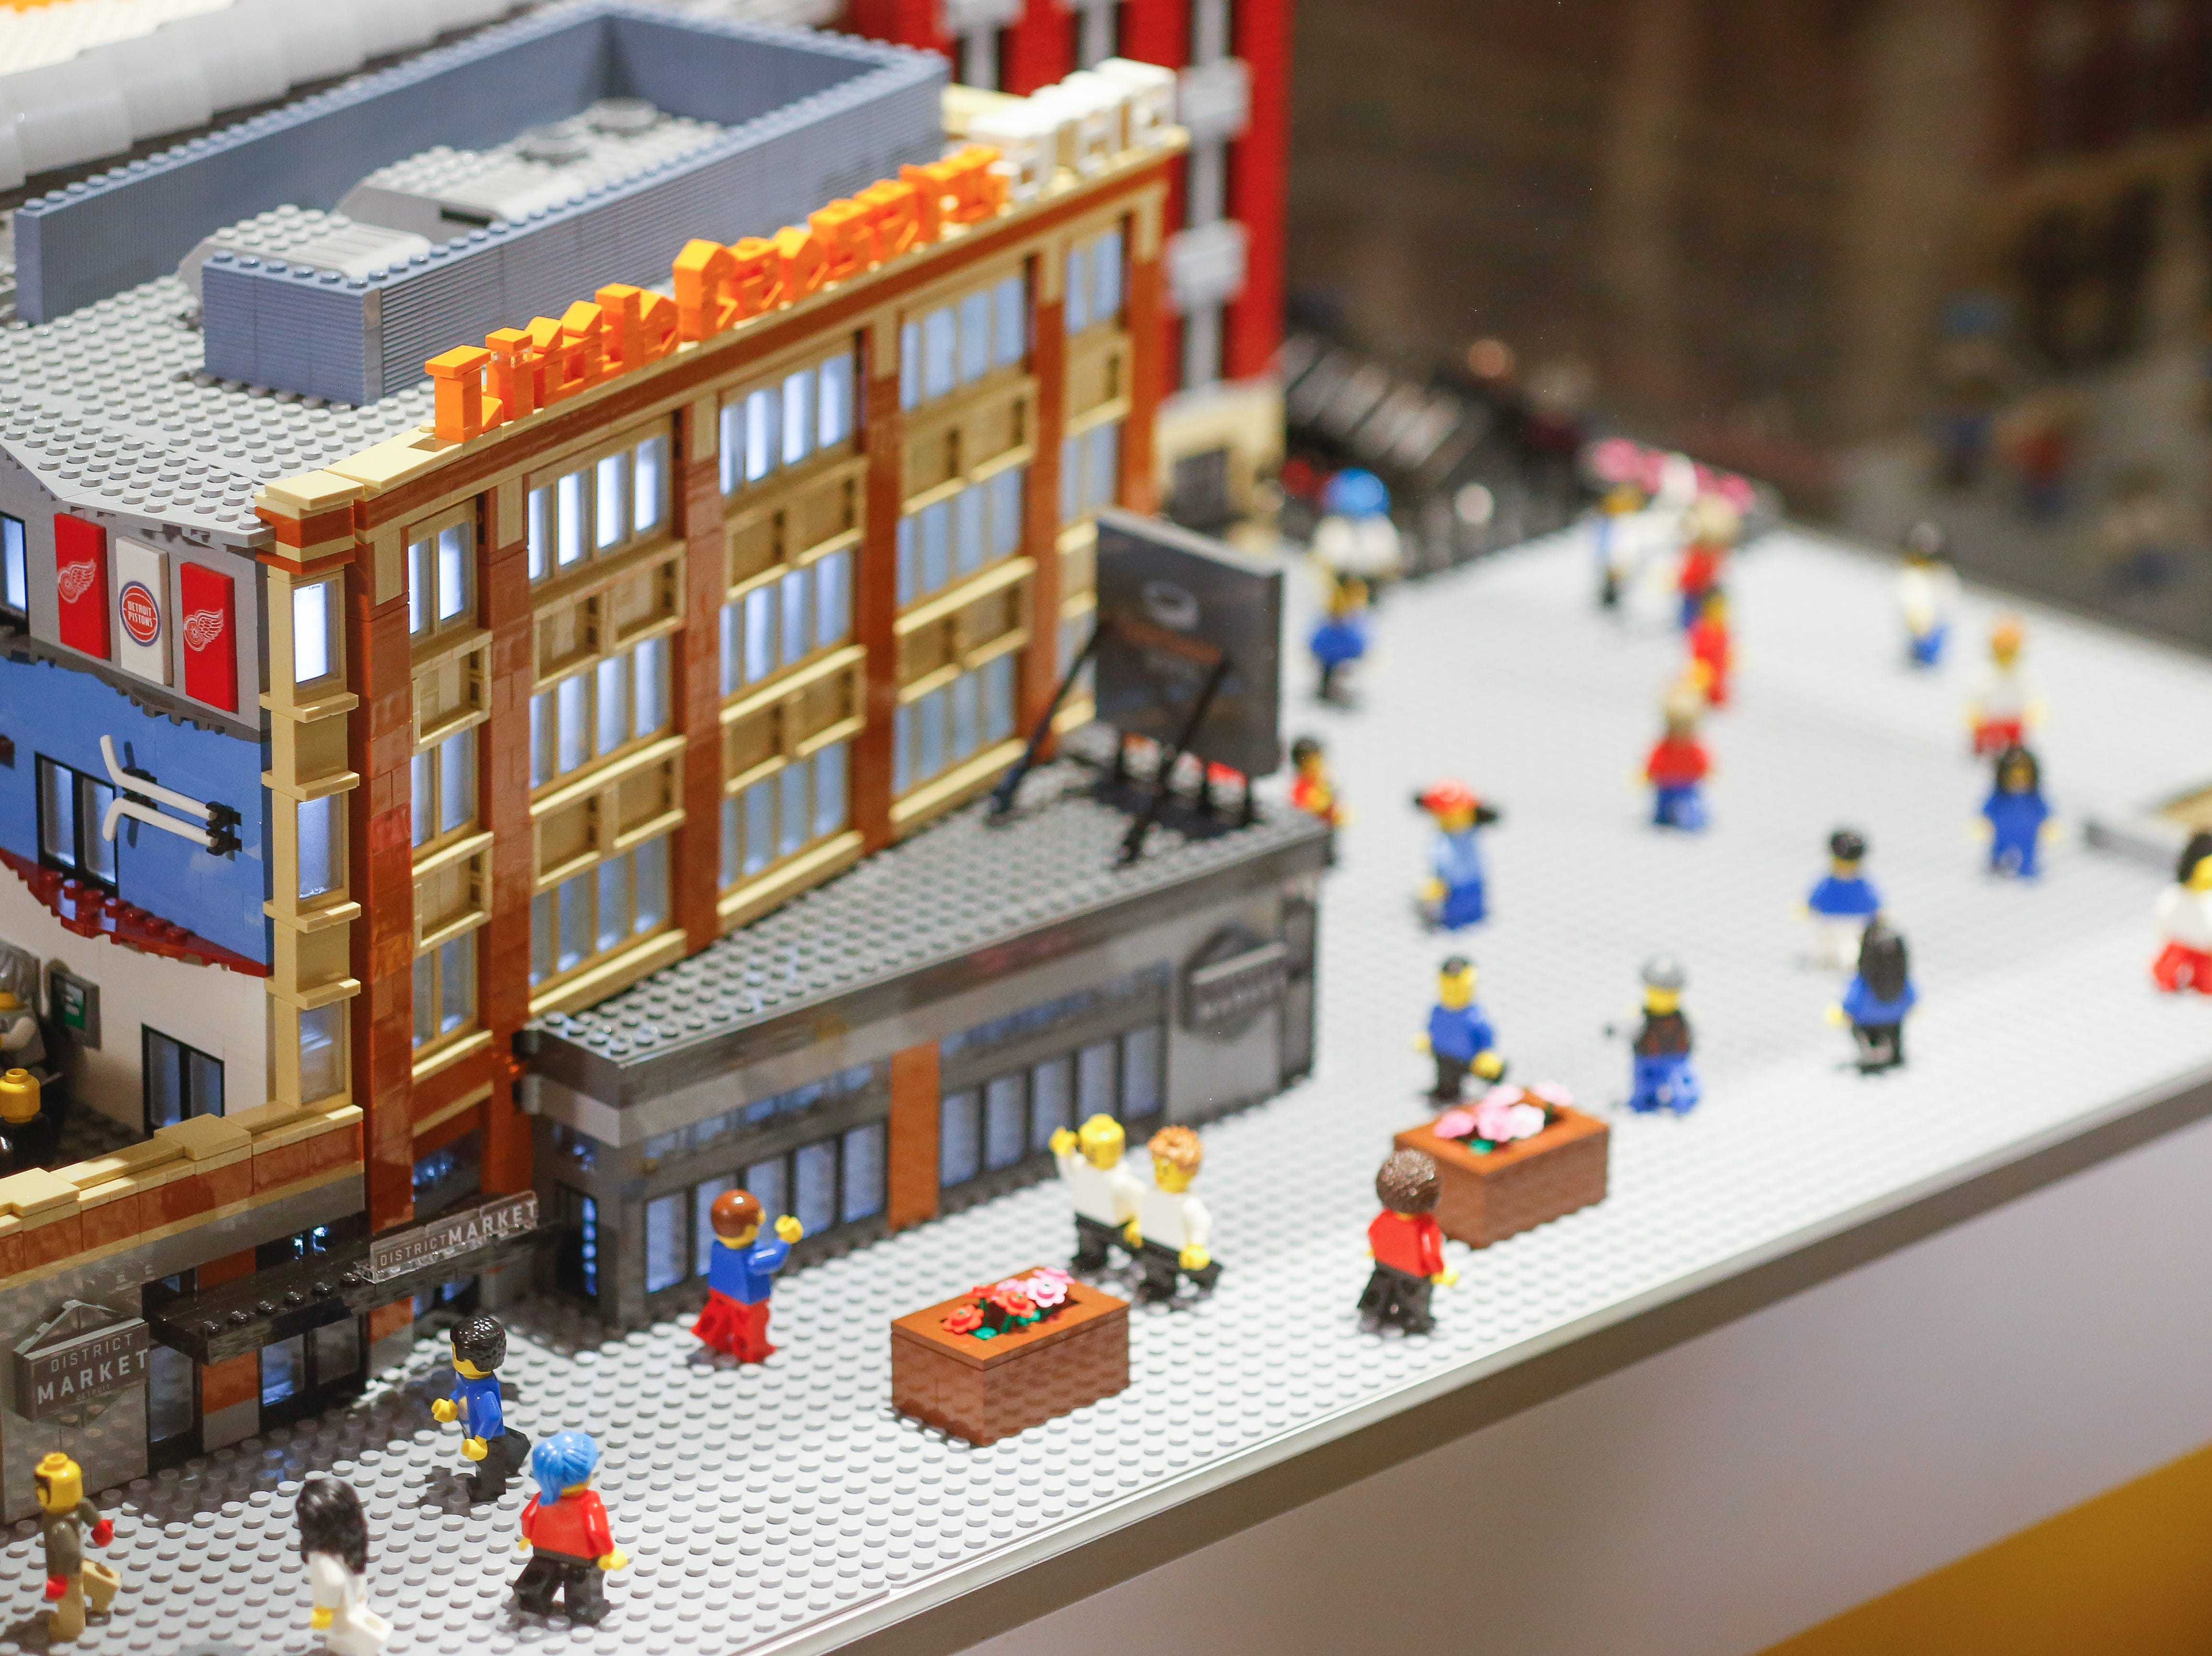 The LEGO model of Little Caesars Arena will be temporarily located at the northeast corner of the concourse near the Gordie Howe statue. It will eventually move to LEGOLAND Auburn Hills.